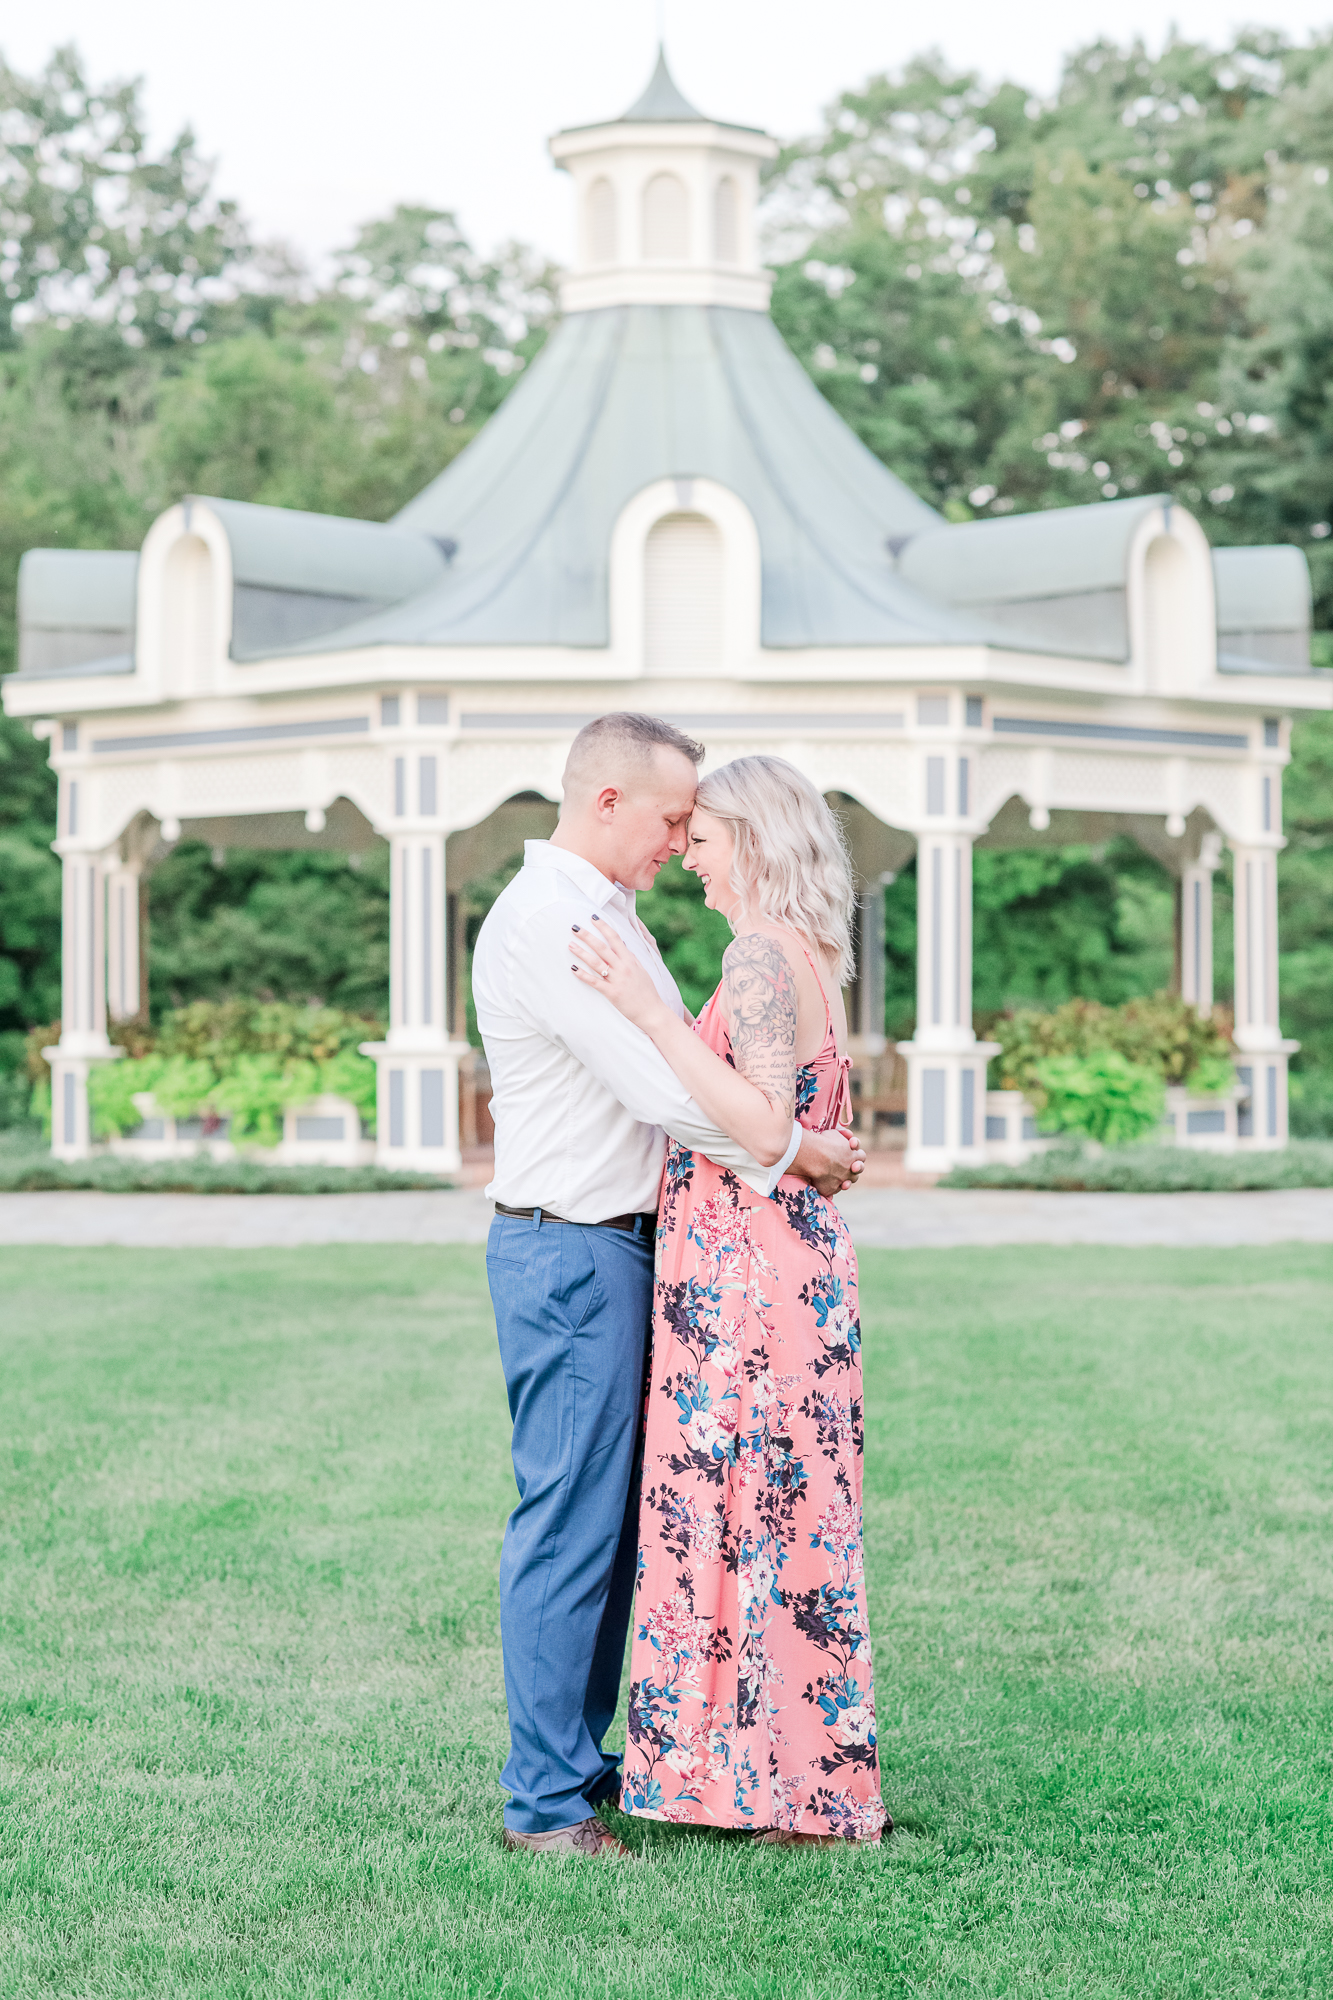 Kristina+Matt_Engagement Session_Mill Creek Park_Youngstown_Ohio-38.jpg